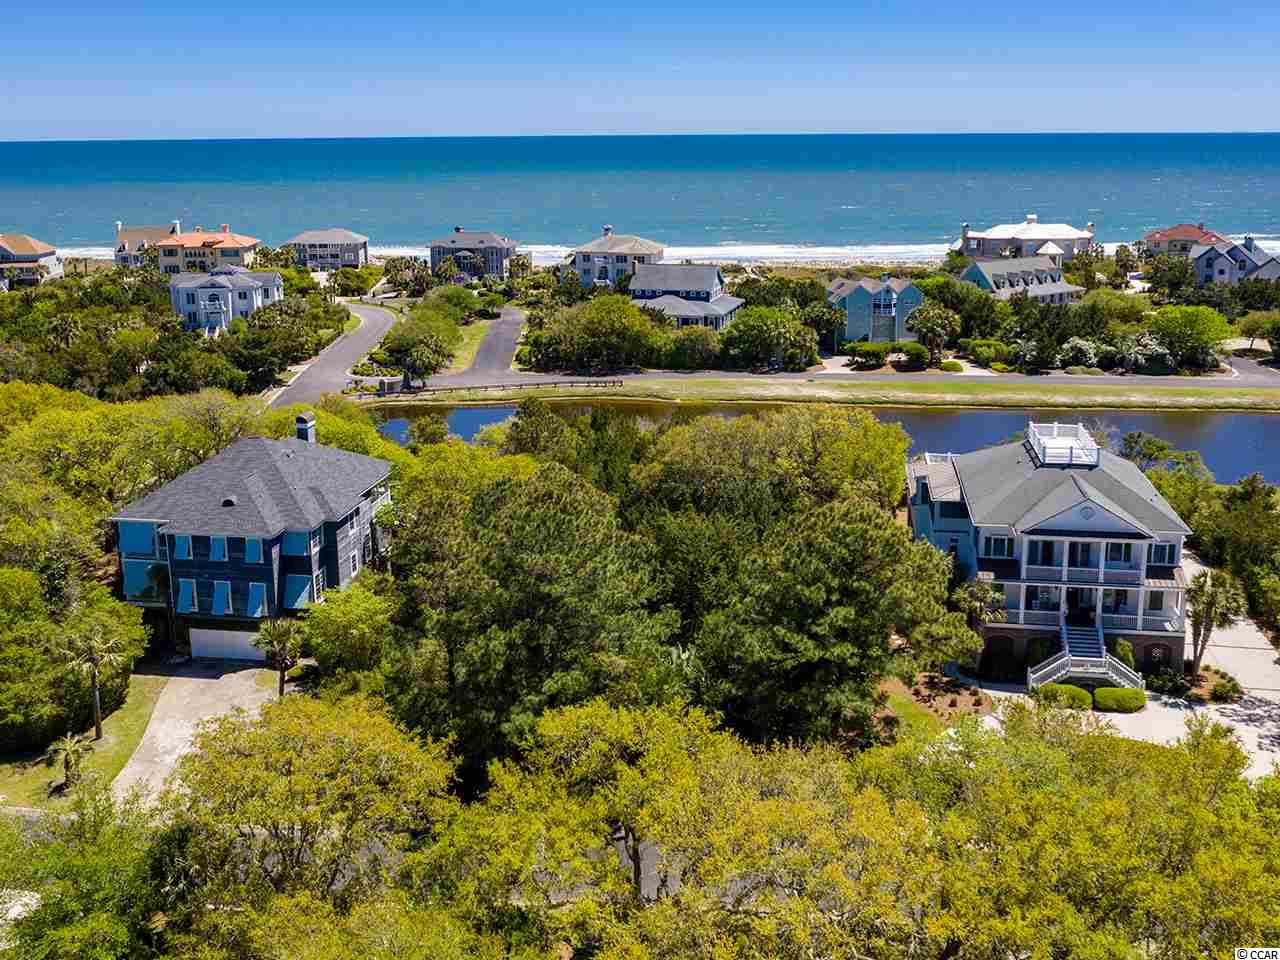 DeBordieu Colony - Sea Island -  Lot #29 is one of the unique, water front/ocean view opportunities in this charming section of DeBordieu. So near the beach, from Lot #29, you will walk approximately 250 yards on direct beach walkway to relax in waters of Atlantic Ocean - the perfect proximity for a home setting. Lot 29 is a short cart ride to the Beach Club, dining, pools, playgrounds, crabbing & fishing - making it ideal for the purchaser who takes pride in constructing a large, lovely, visible beach home. DeBordieu Colony offers access to 6 miles of secluded beach, 24-hour security gate, surrounding environment protections, private Fitness center, private golf & tennis, community boat ramp, saltwater creek access, boating, nature preserve with walking trails & bike paths, private indoor and outdoor dining options.